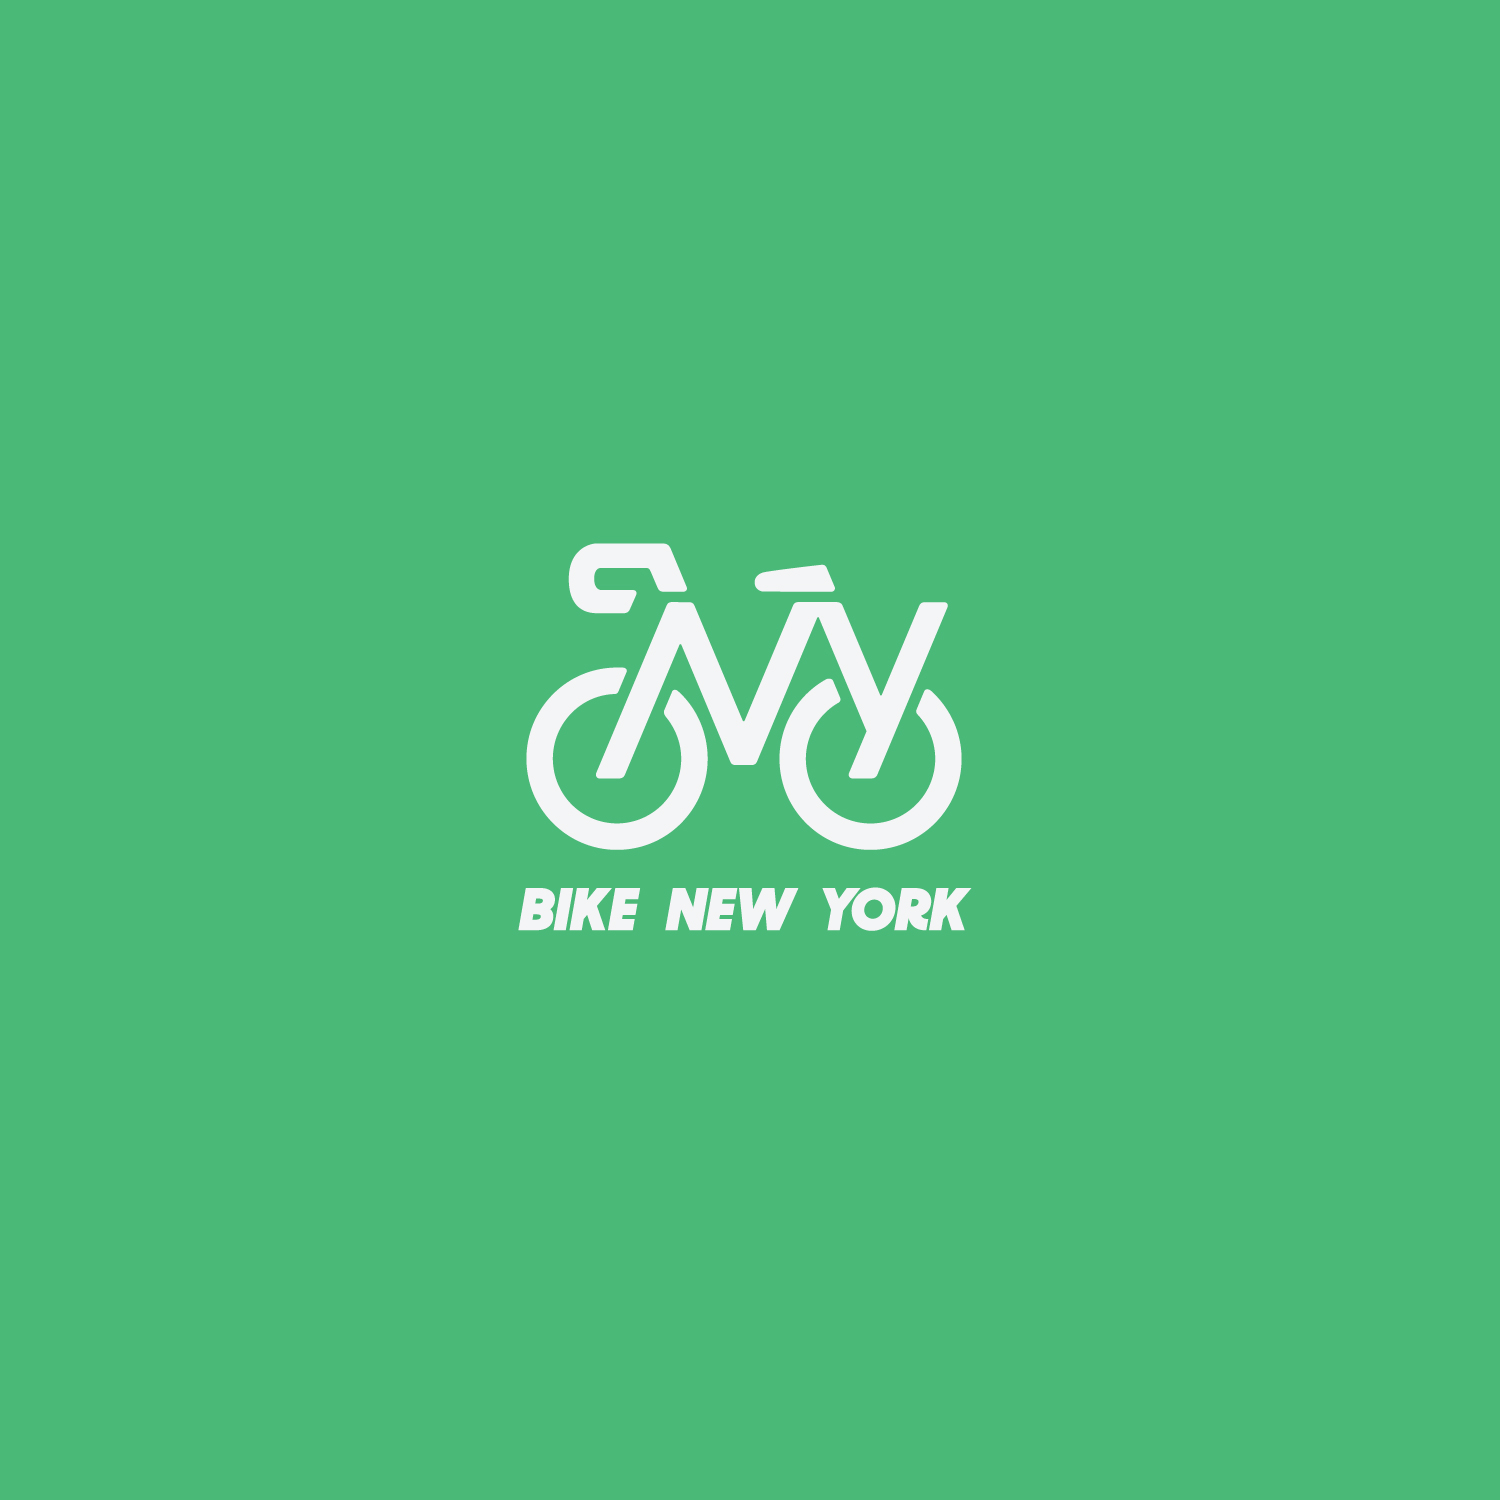 Bike Nyc 2014 Bike New York